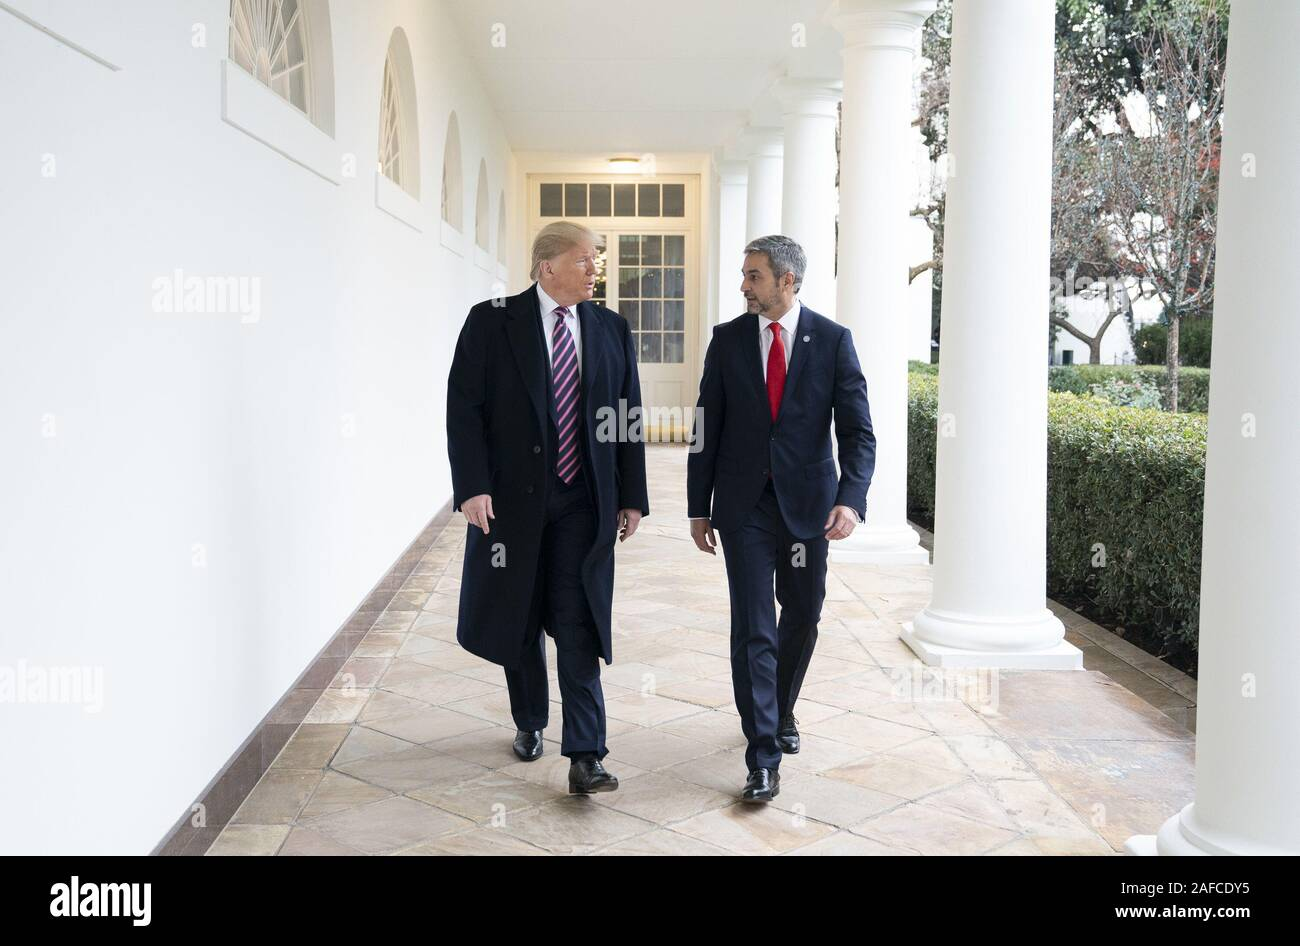 Washington, United States Of America. 13th Dec, 2019. President Donald J. Trump walks with Paraguay President Mario Abdo Benitez Friday, Dec. 13, 2019, along the Colonnade of the White House People: President Donald J. Trump, Paraguay President Mario Abdo Benitez Credit: Storms Media Group/Alamy Live News Stock Photo